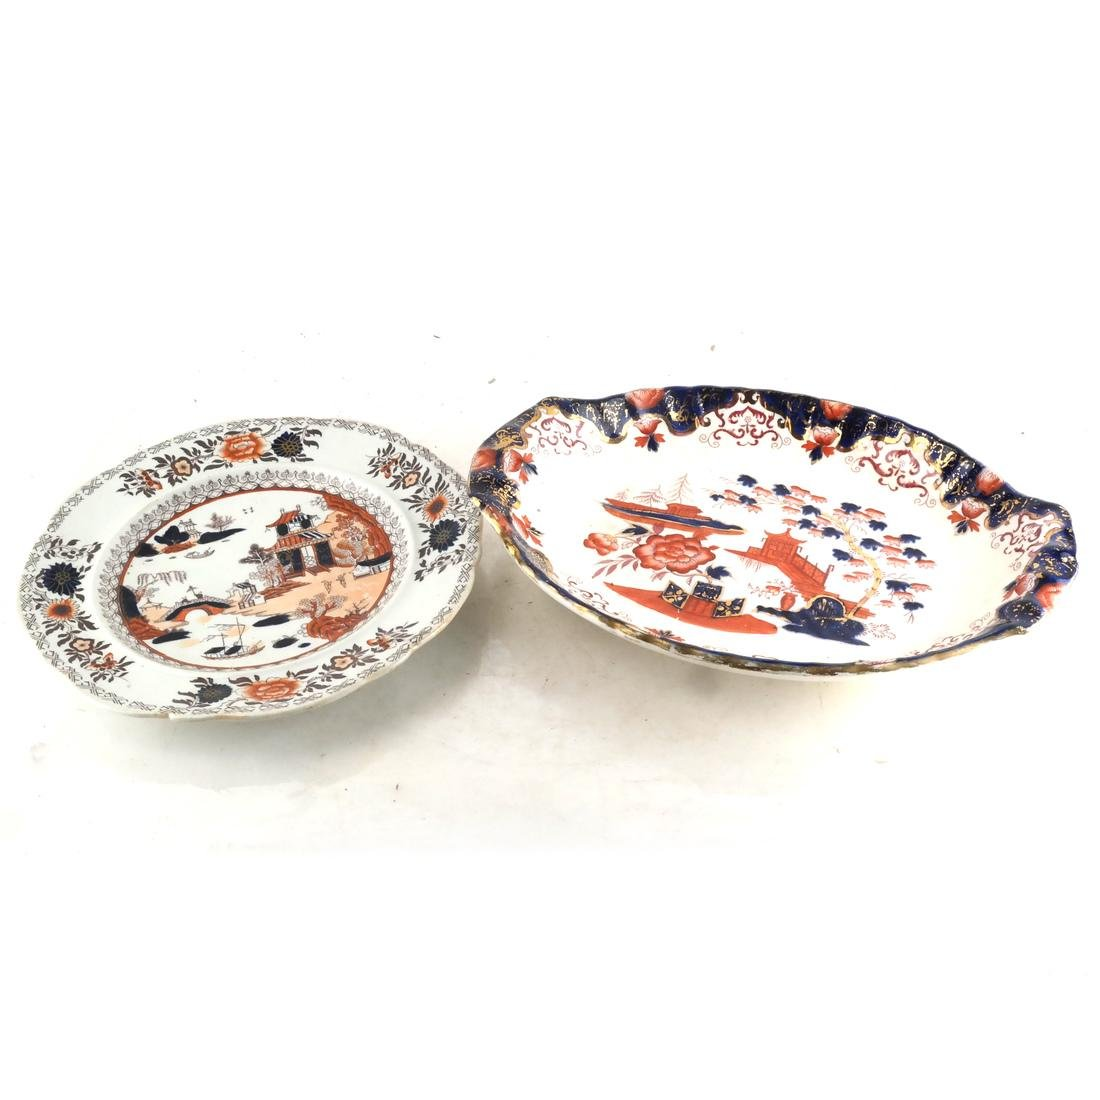 Two English Decorated Dishes